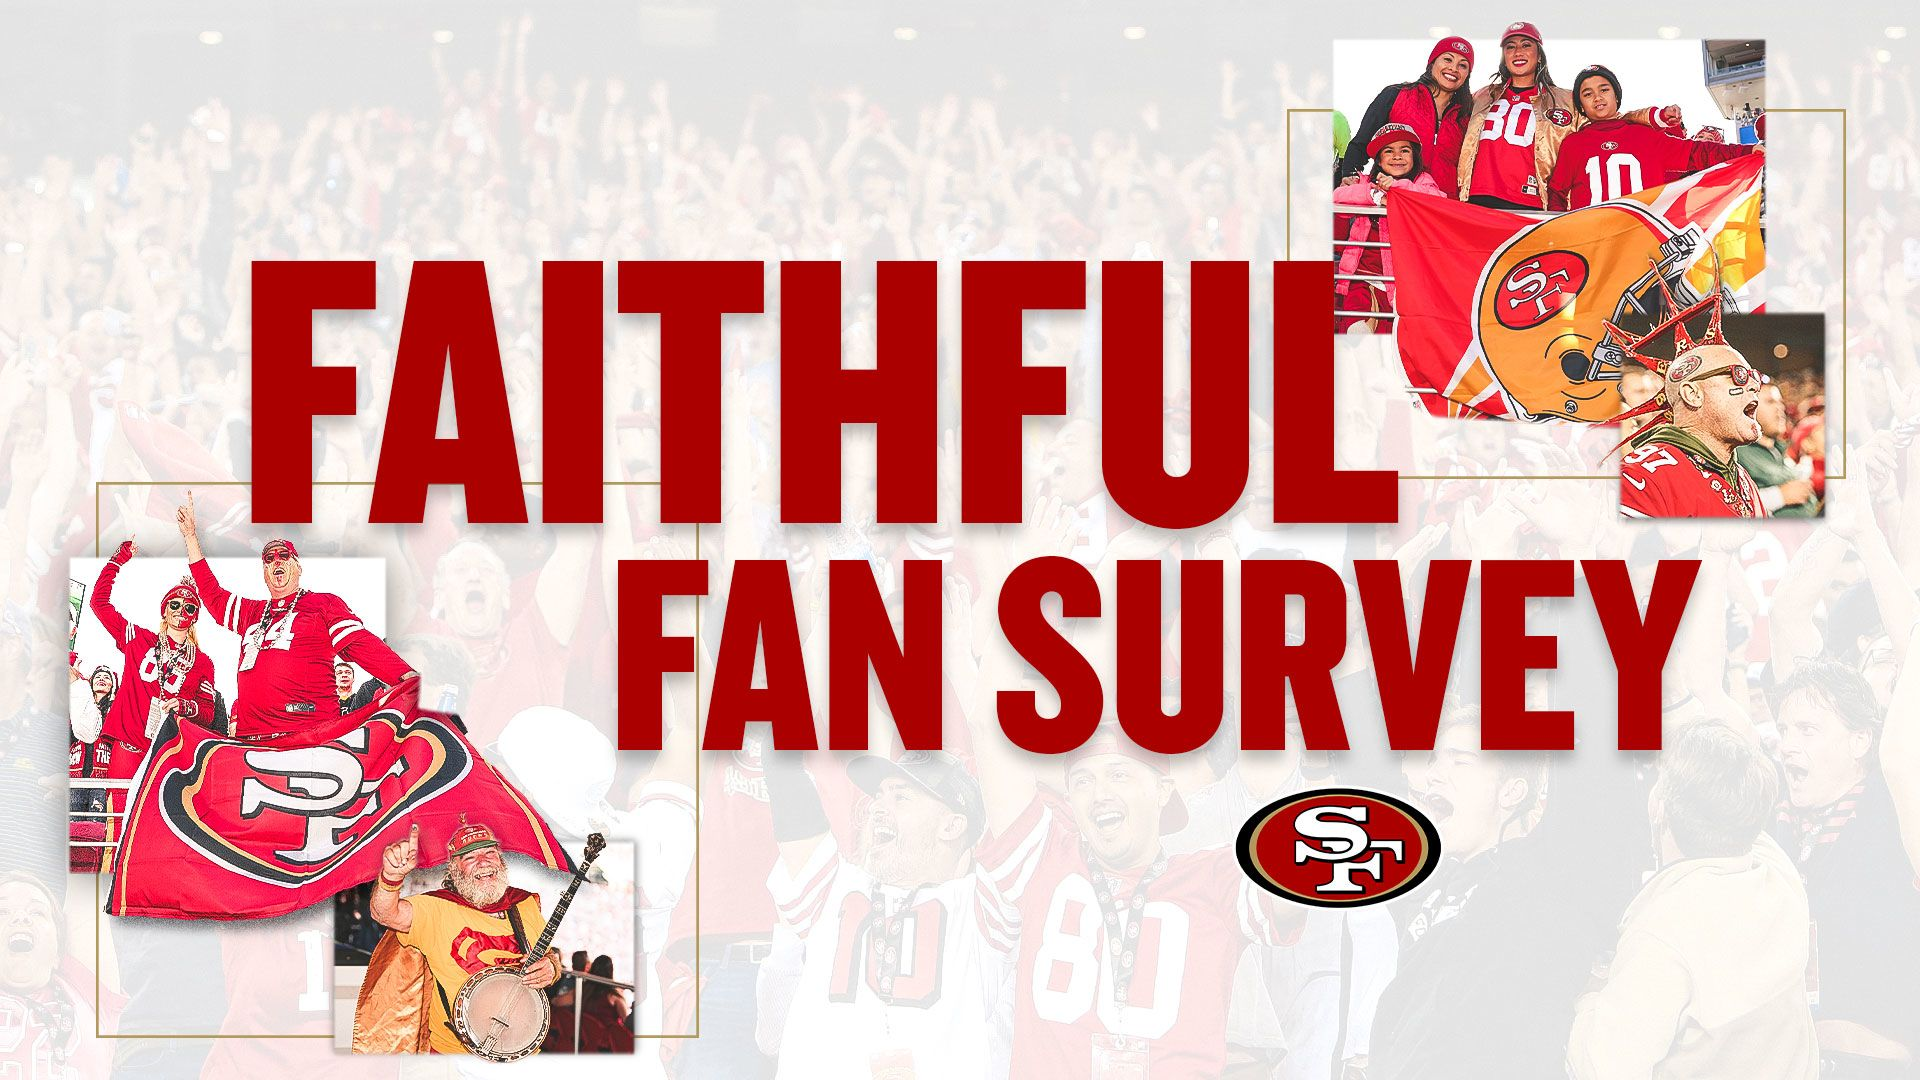 FaithfulFanSurvey-1920x1080